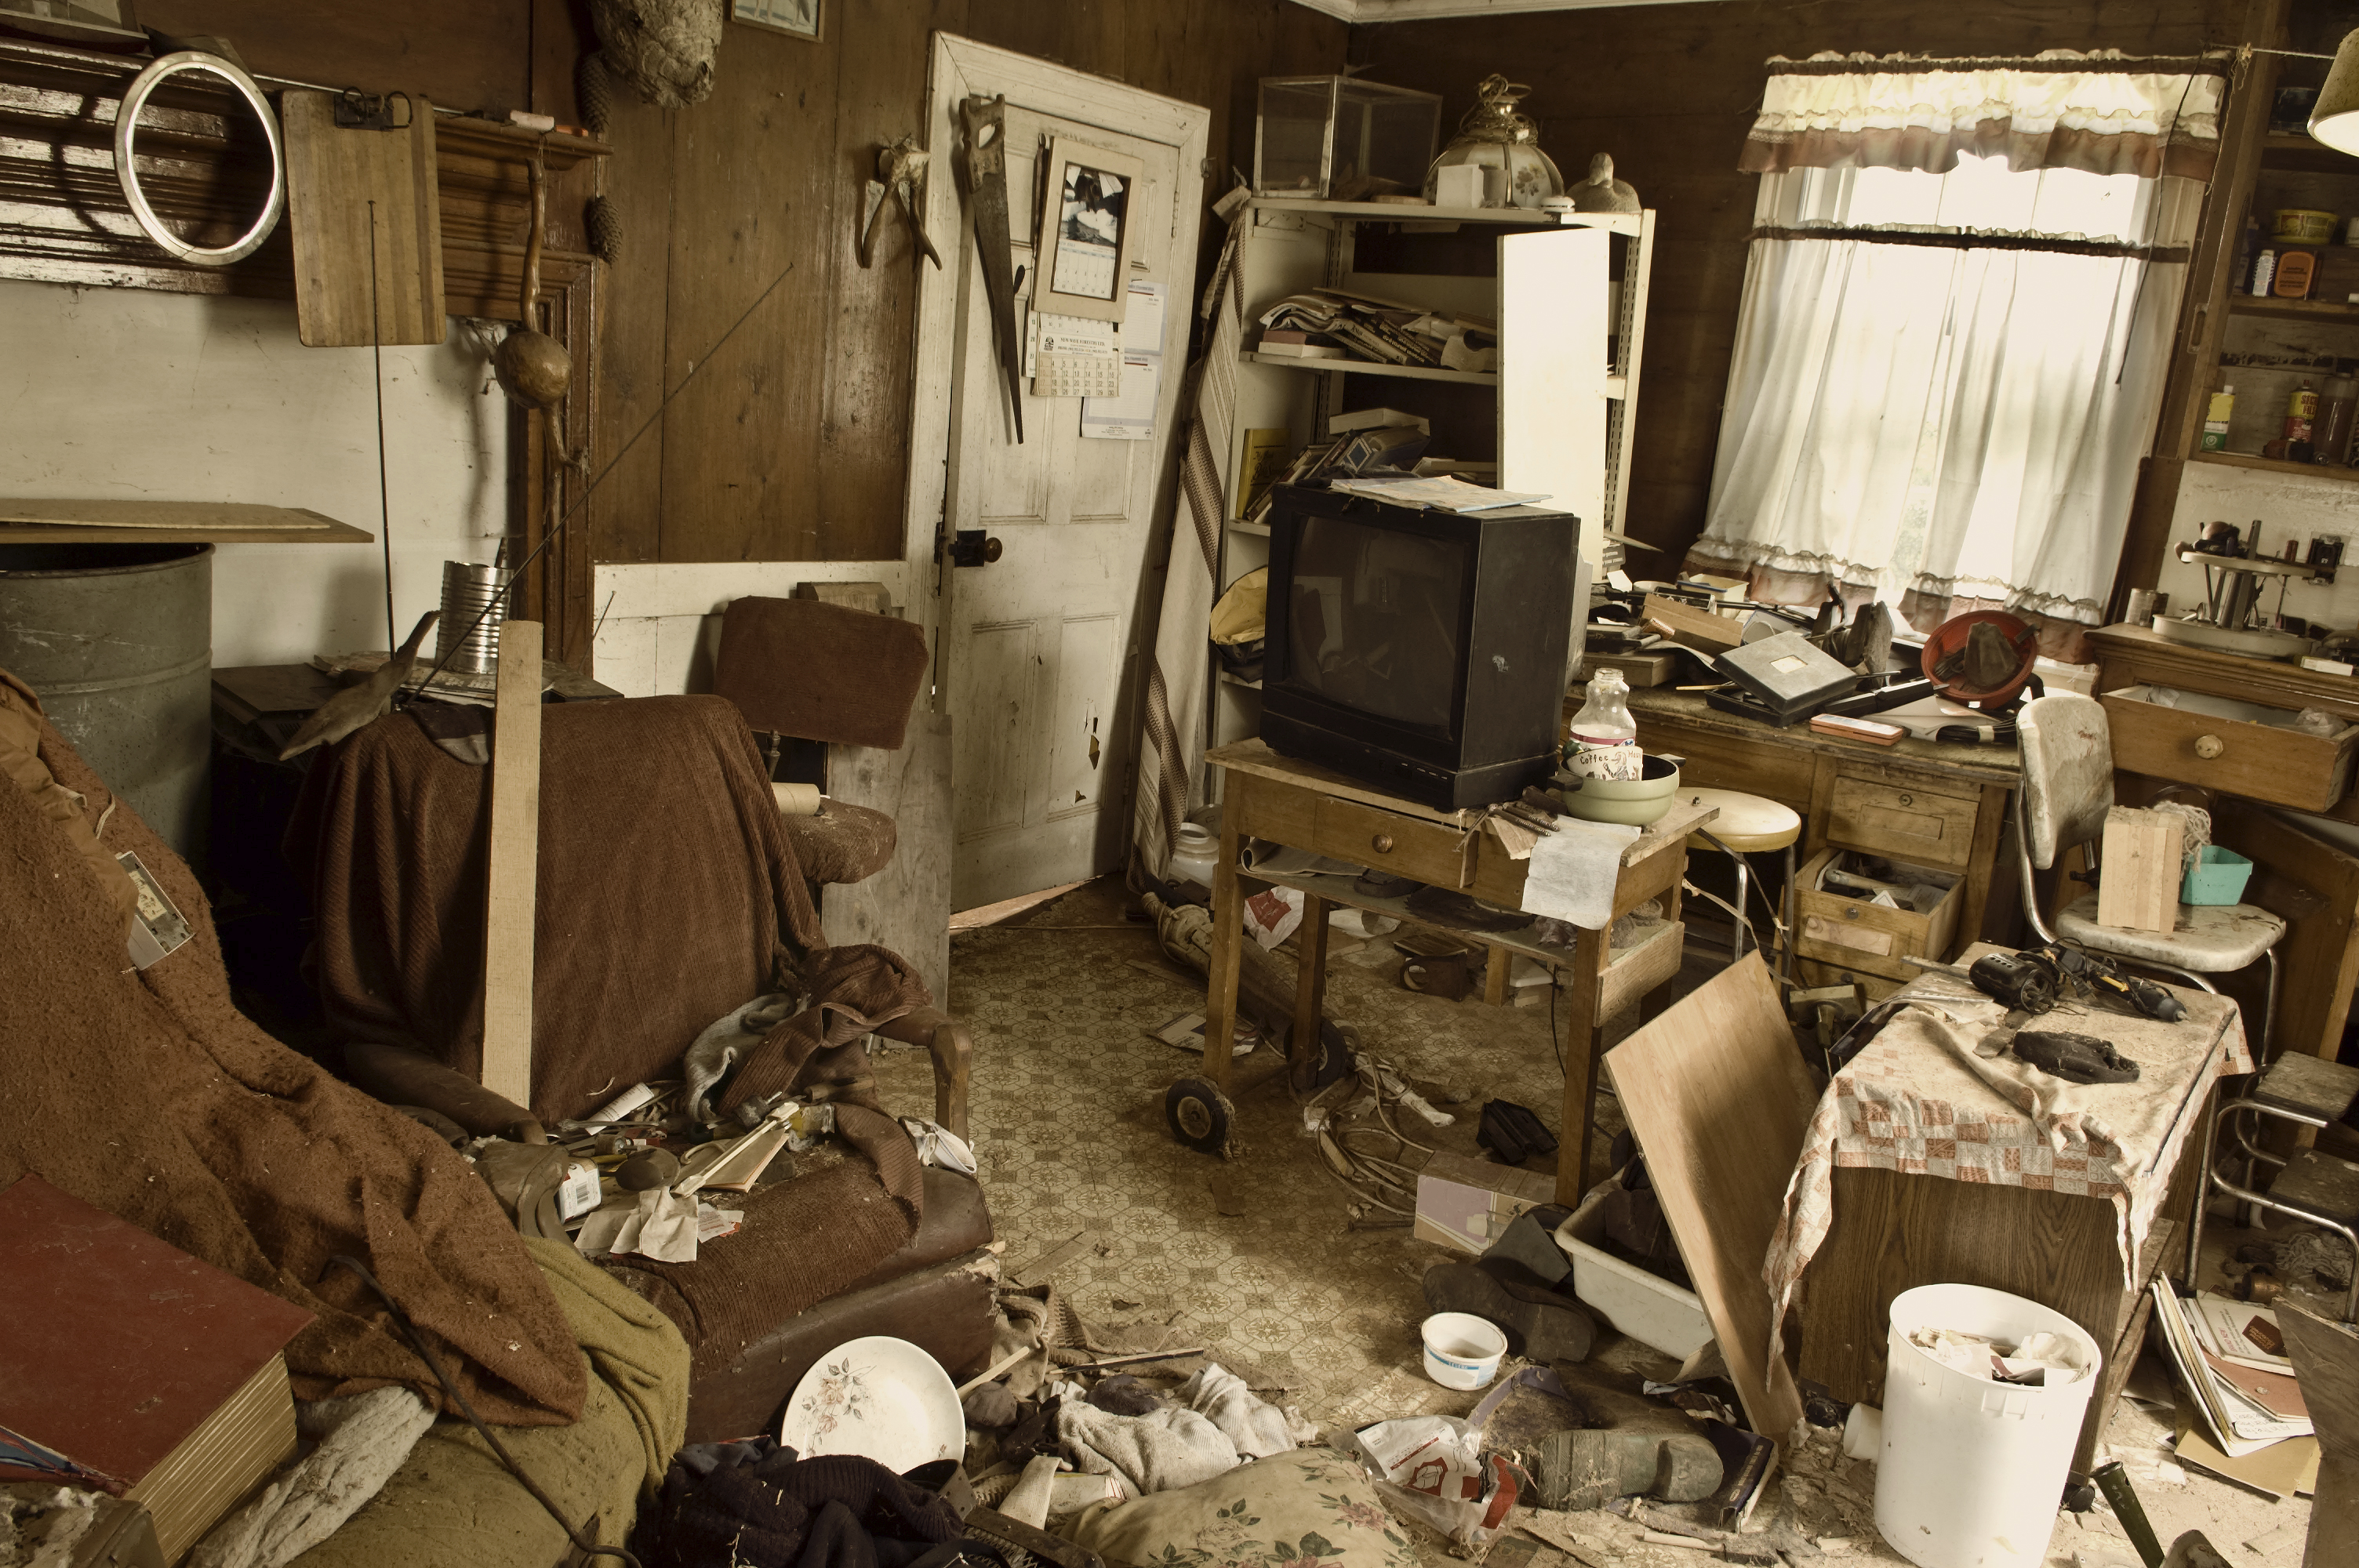 Aftermath Customer Reviews – Hoarding in Boston